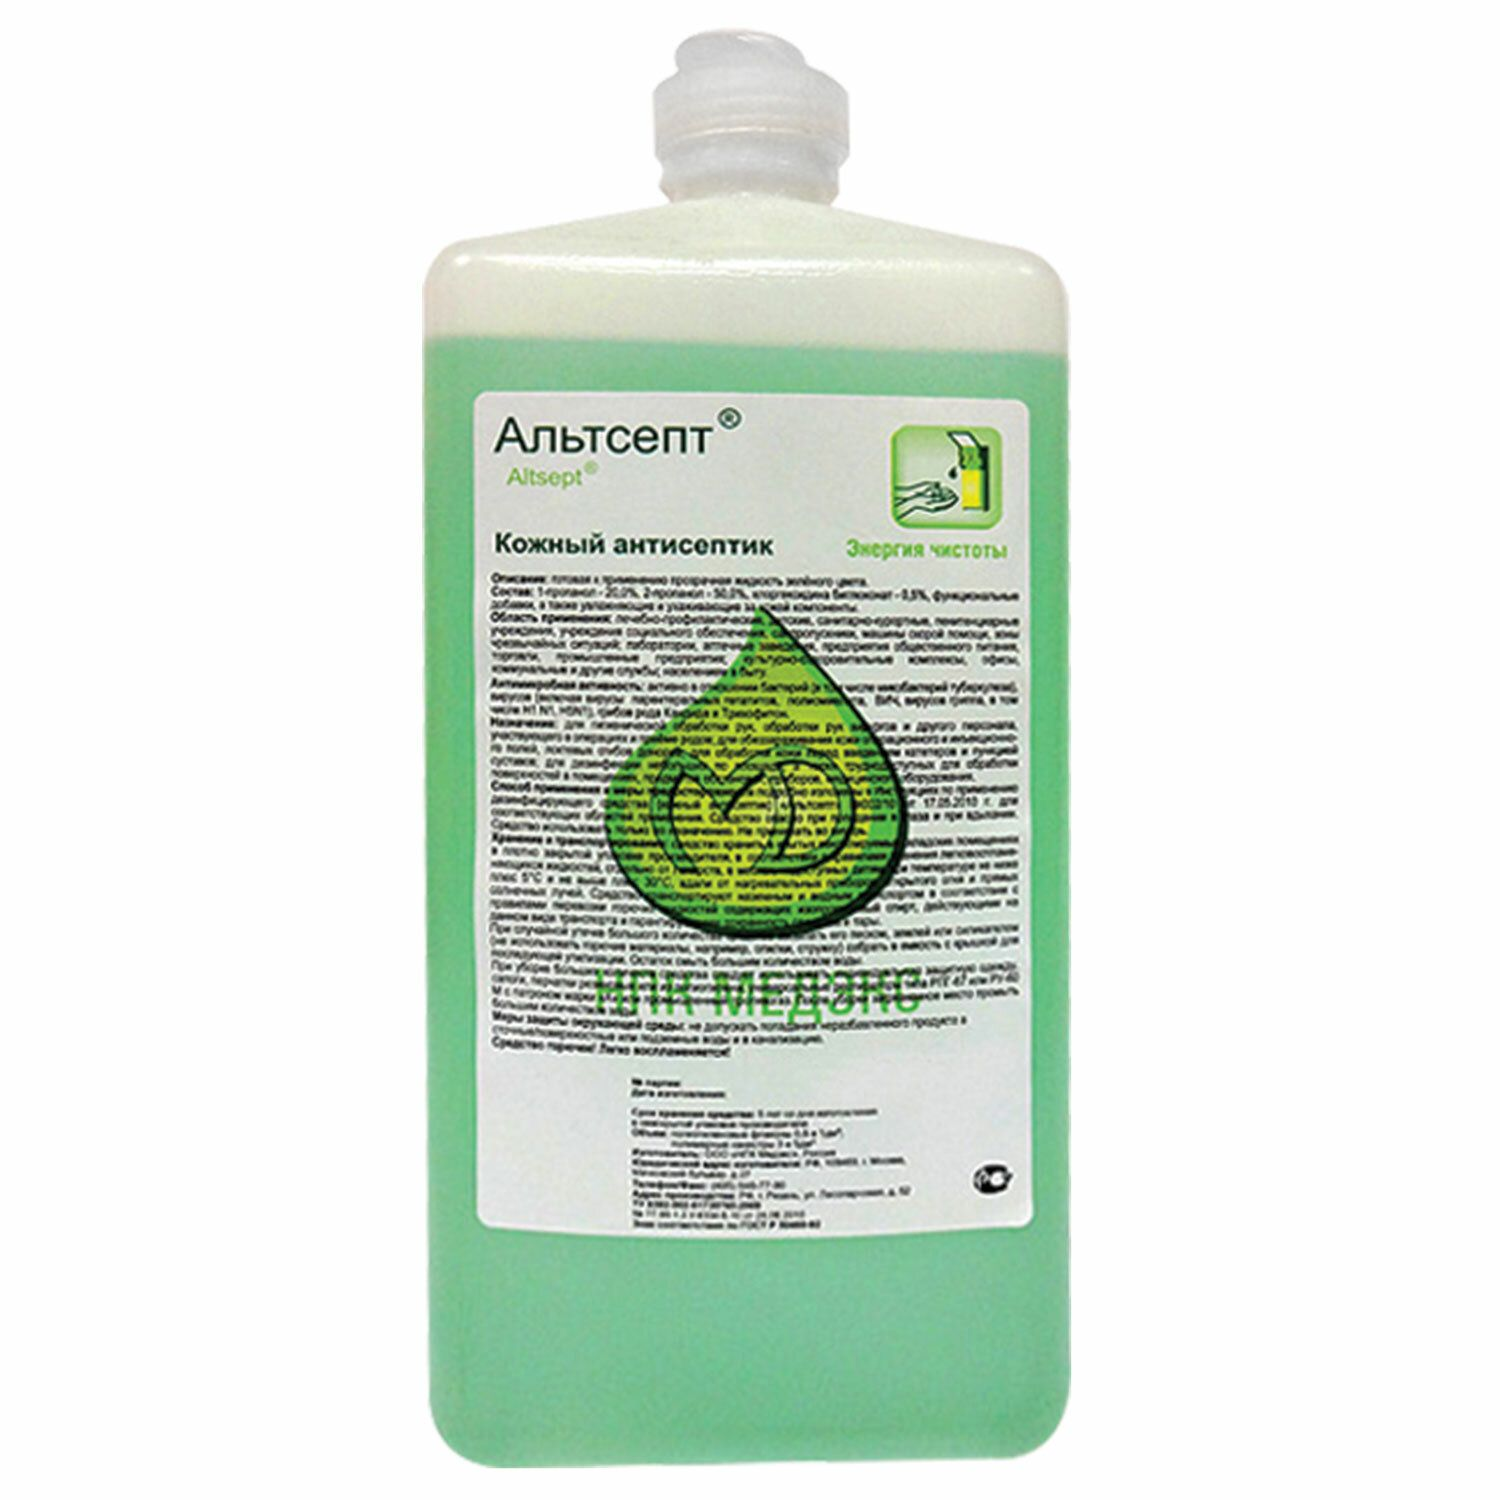 ALTSEPT / Antiseptic skin disinfectant alcohol-containing 70% ready-made solution, 1 l, lid